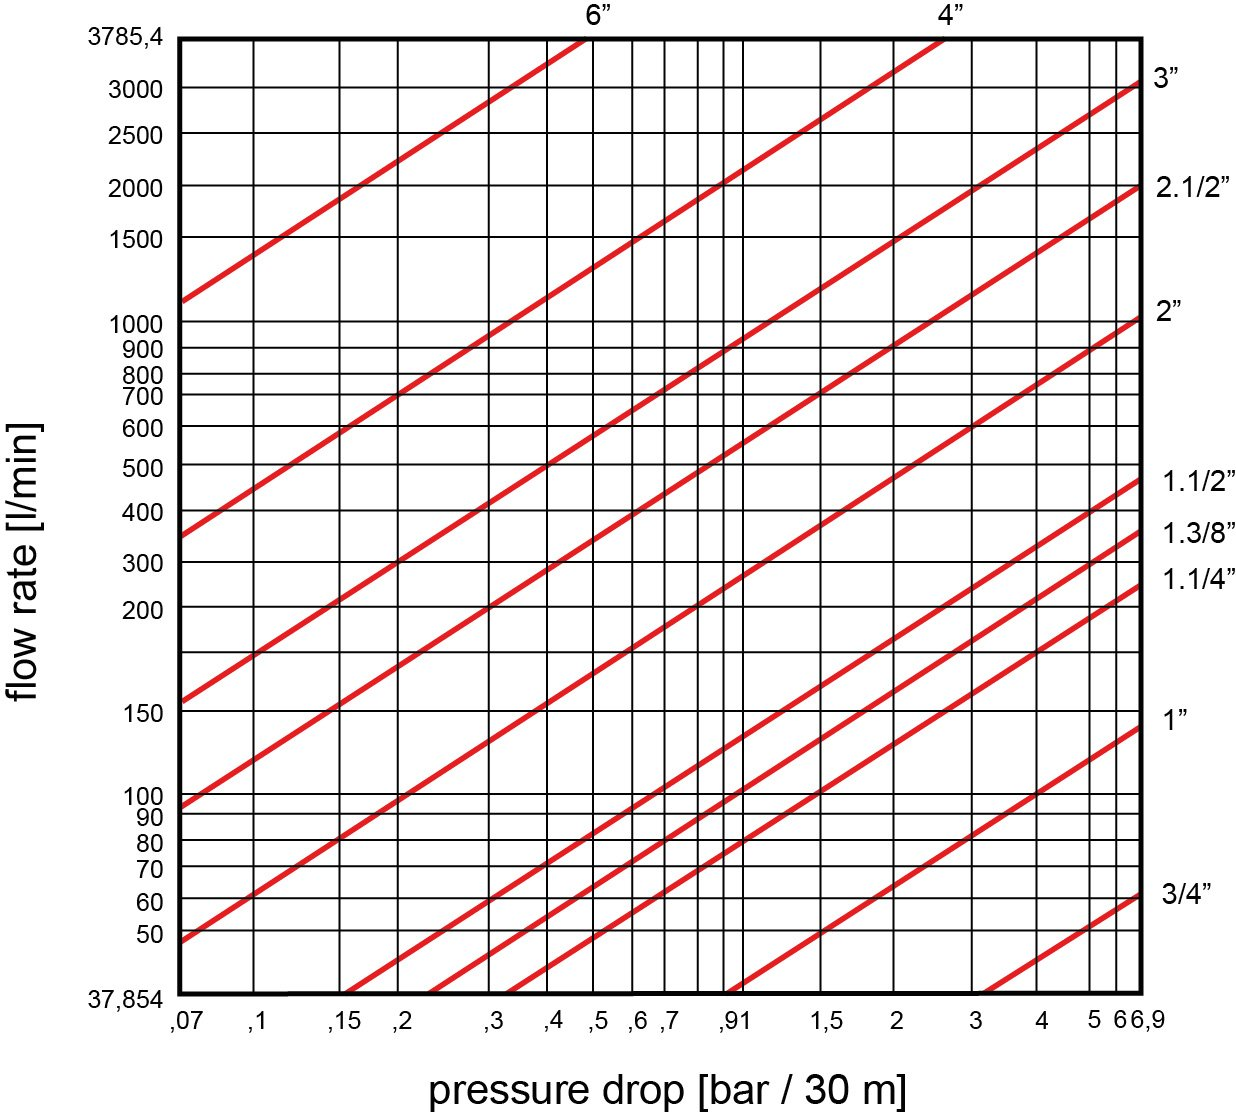 Pressure drop for oil hoses